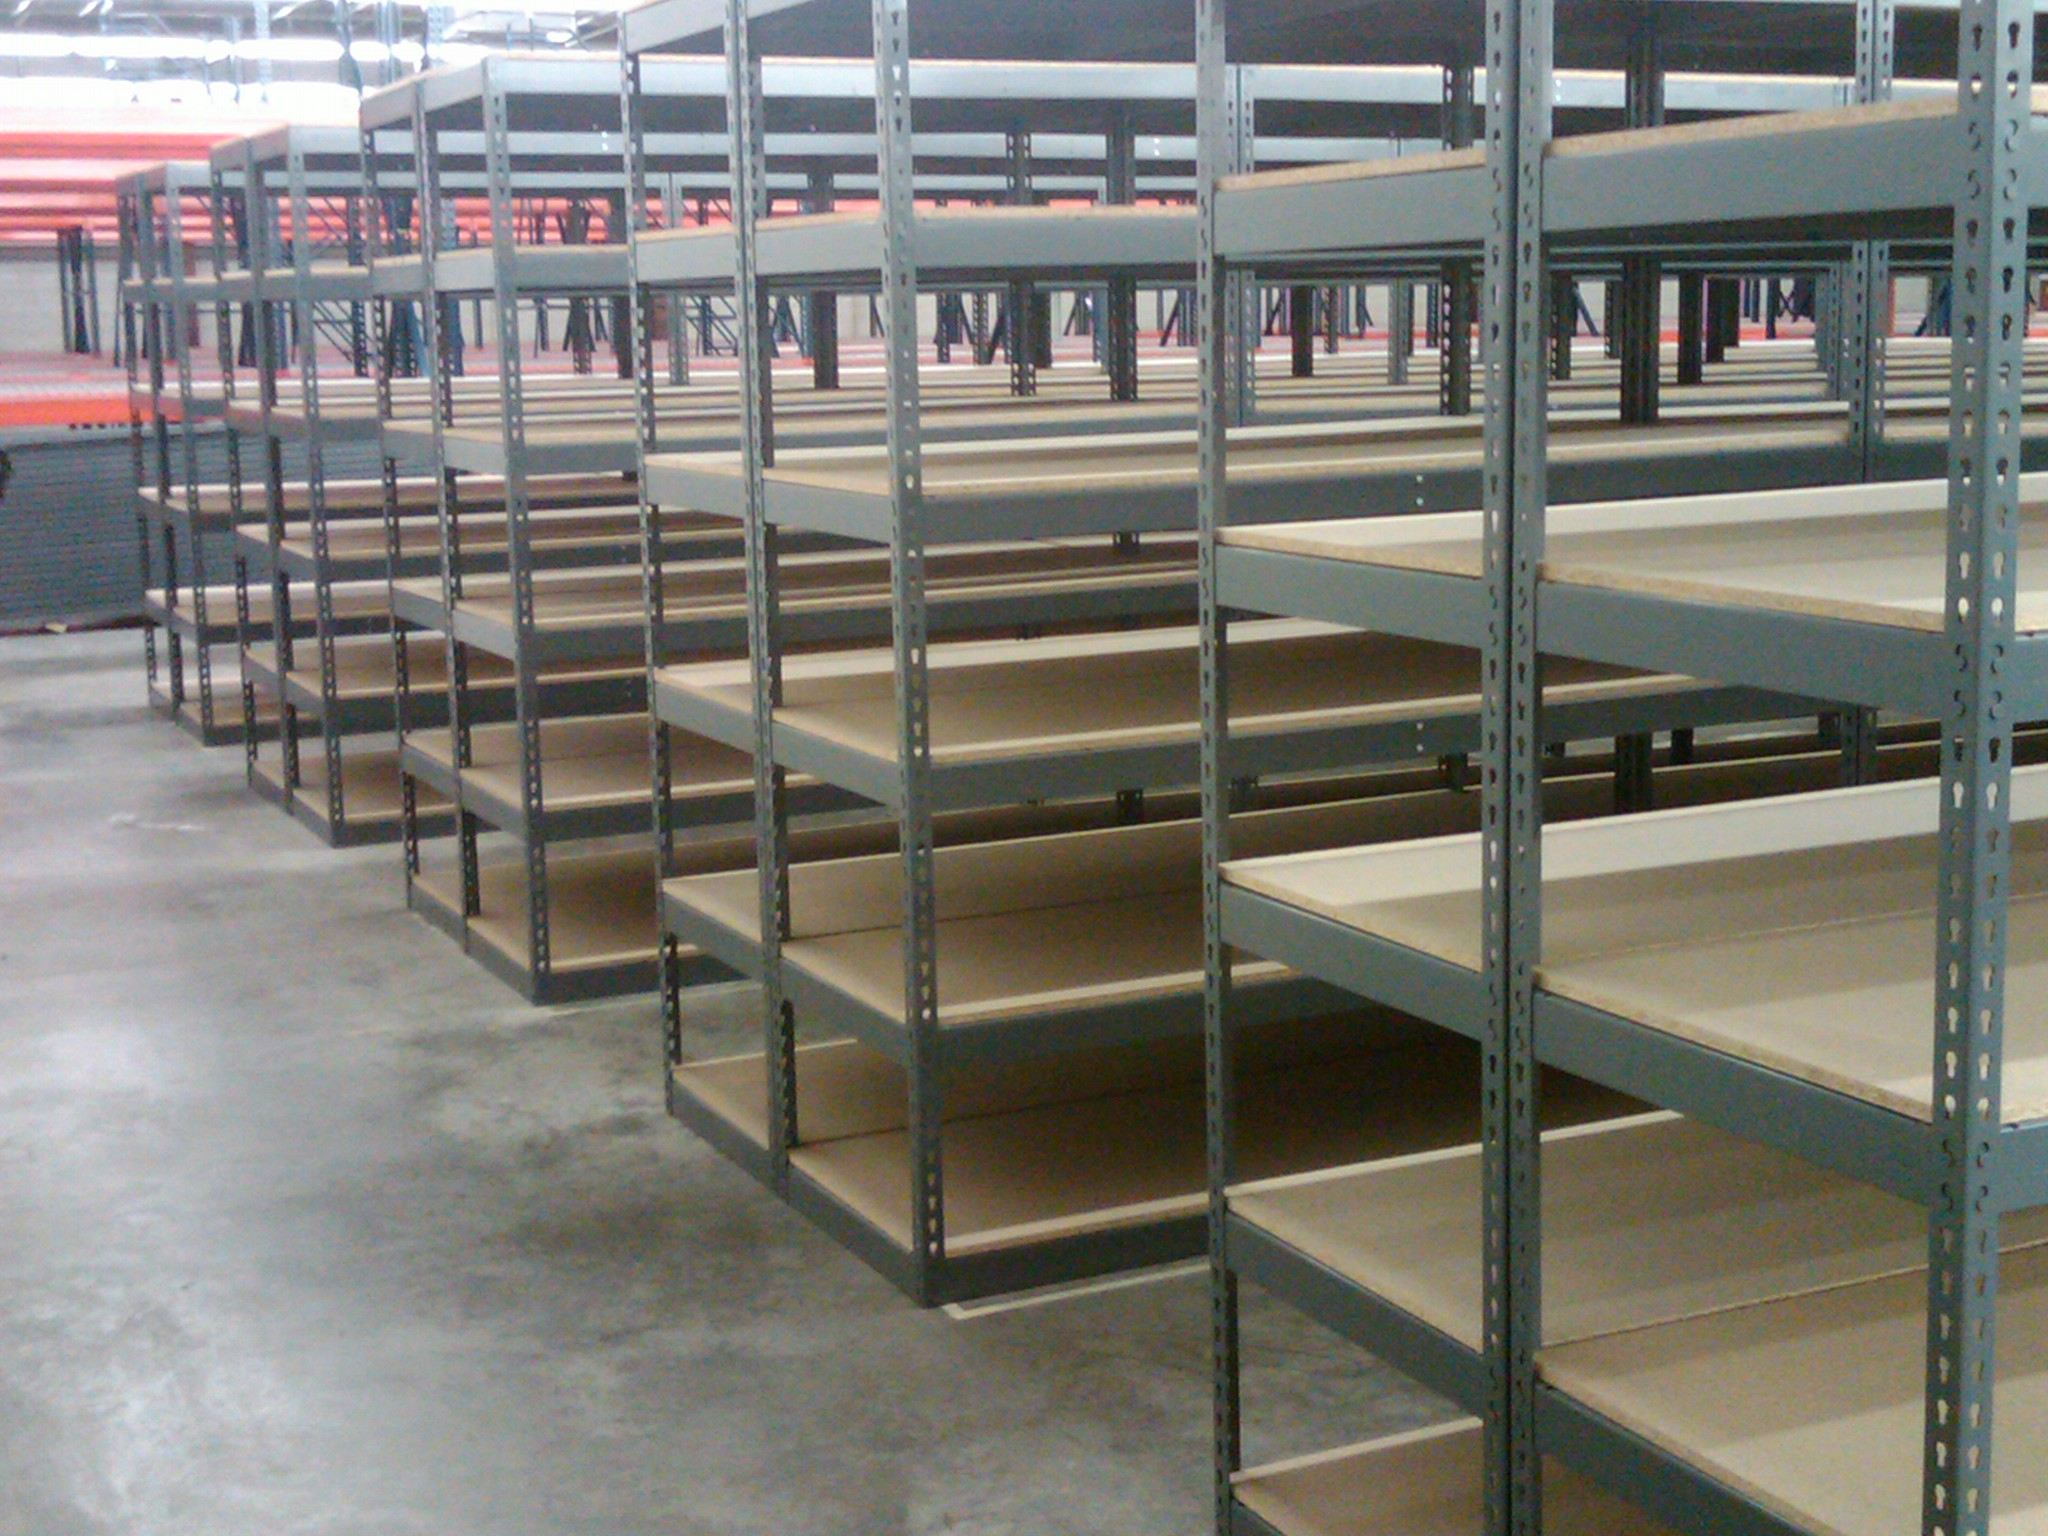 Shelving Installation, Warehouse Storage Installation